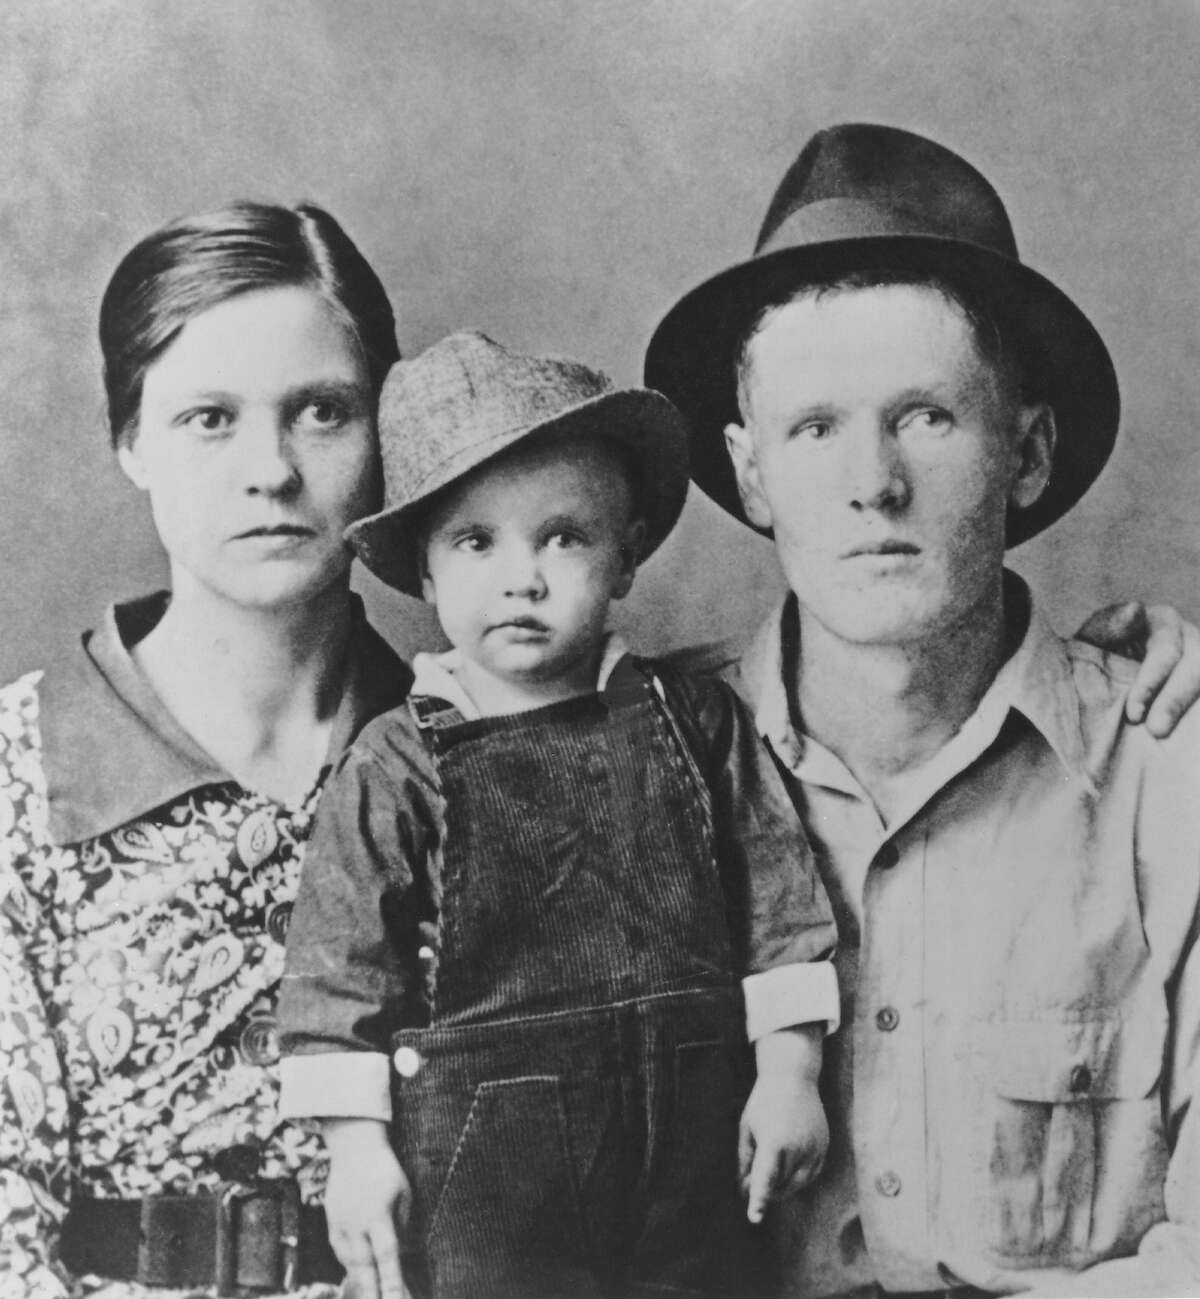 Click through to see photos of Elvis Presley's short 42 years on Earth 2-year-old Elvis Presley poses for a family portrait with his parents Vernon Presley and Gladys Presley in 1937 in Tupelo, Mississippi.